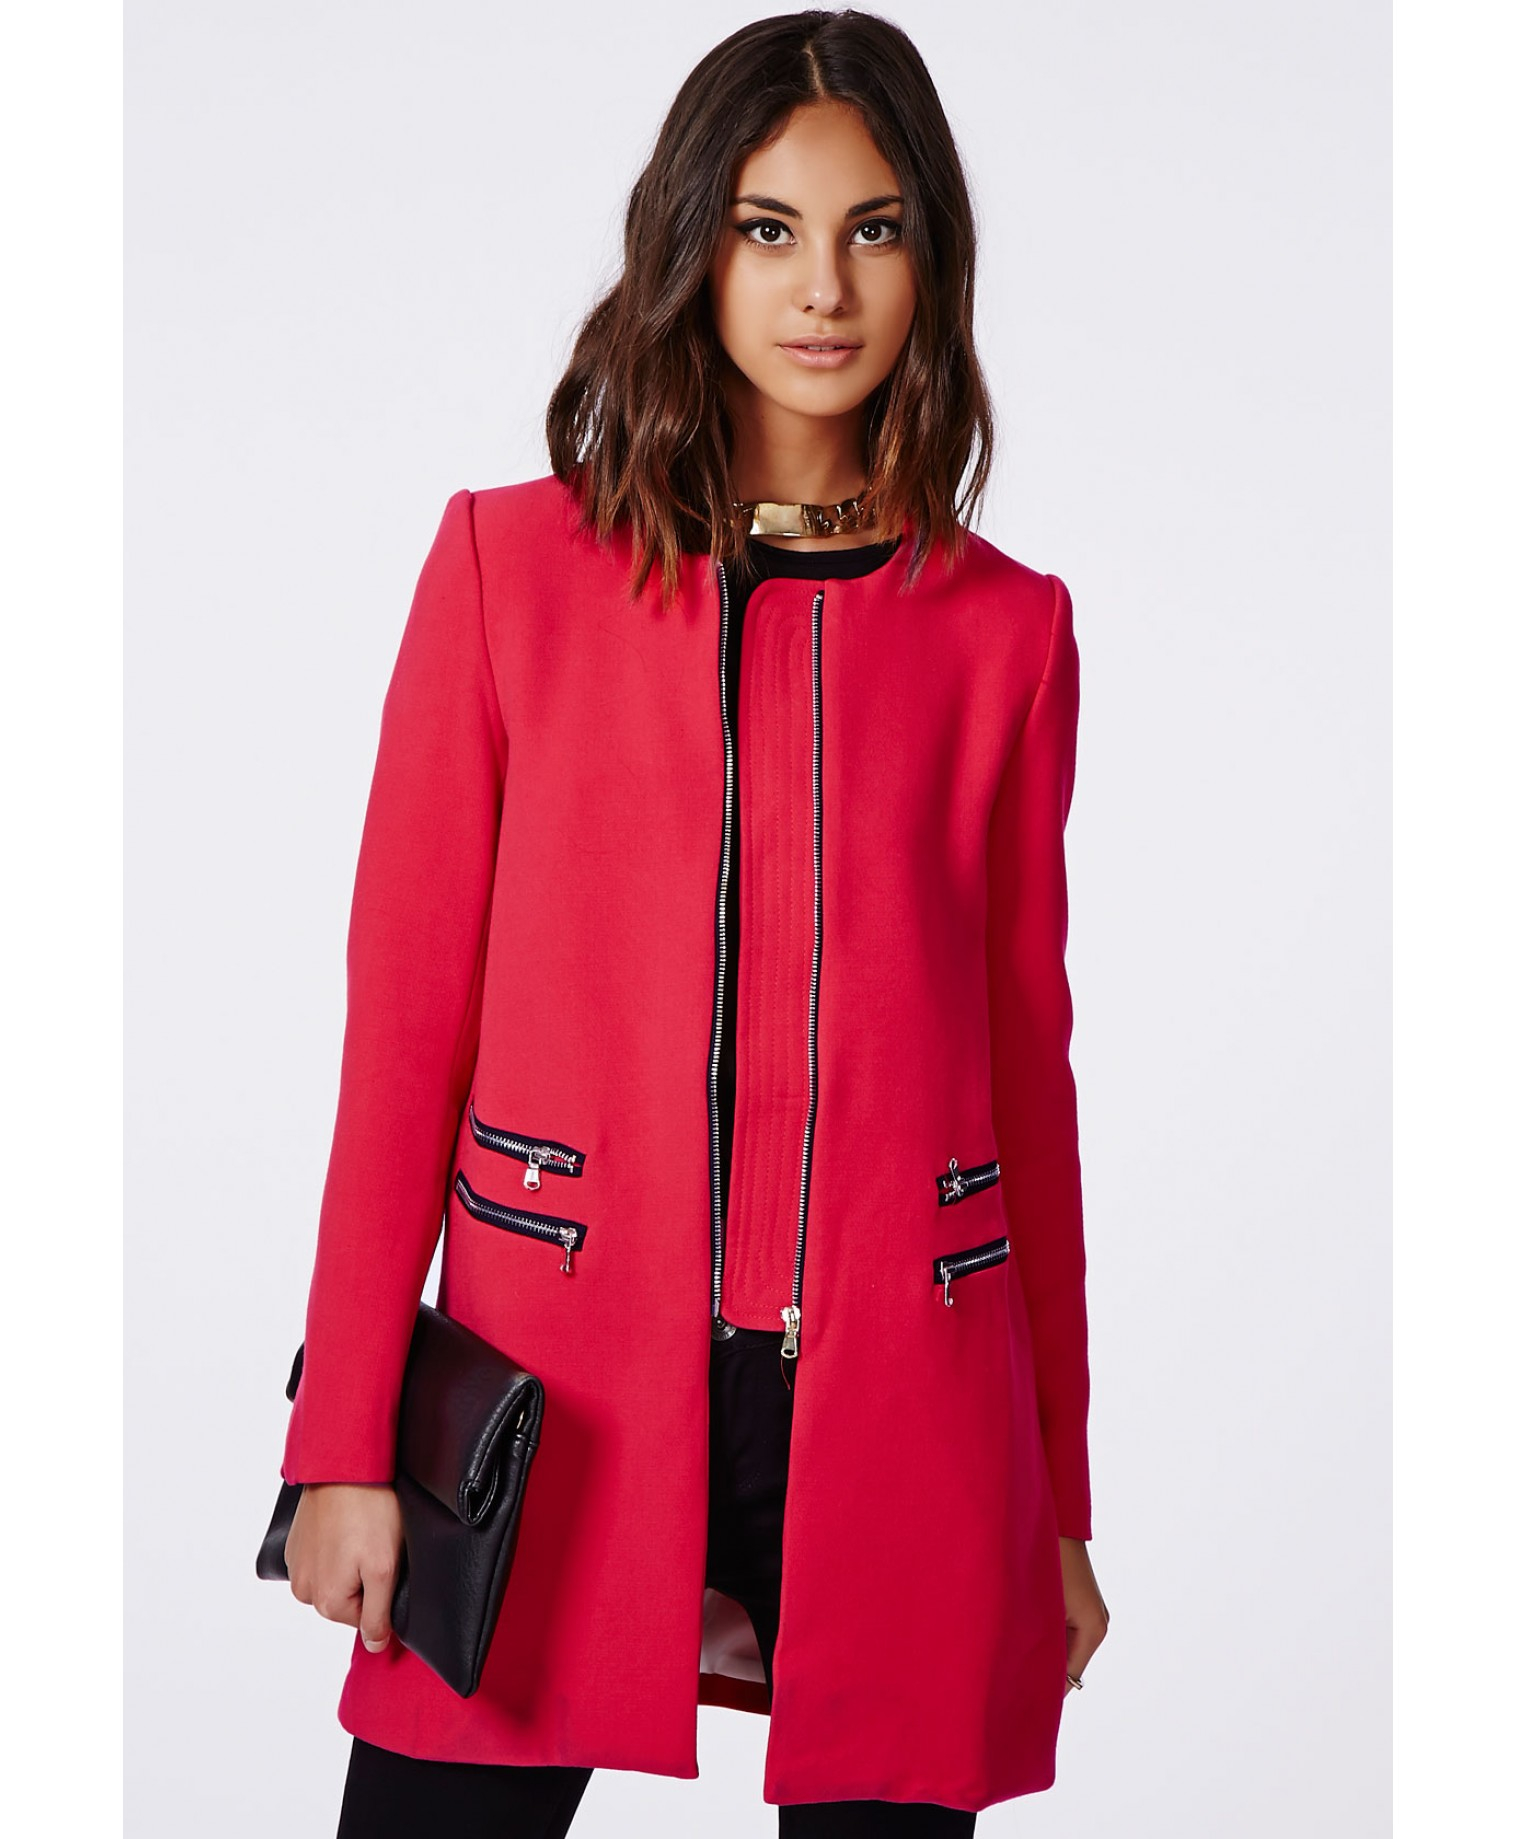 Missguided Jenelle Zip Detail Collarless Jacket Rouge in Red | Lyst